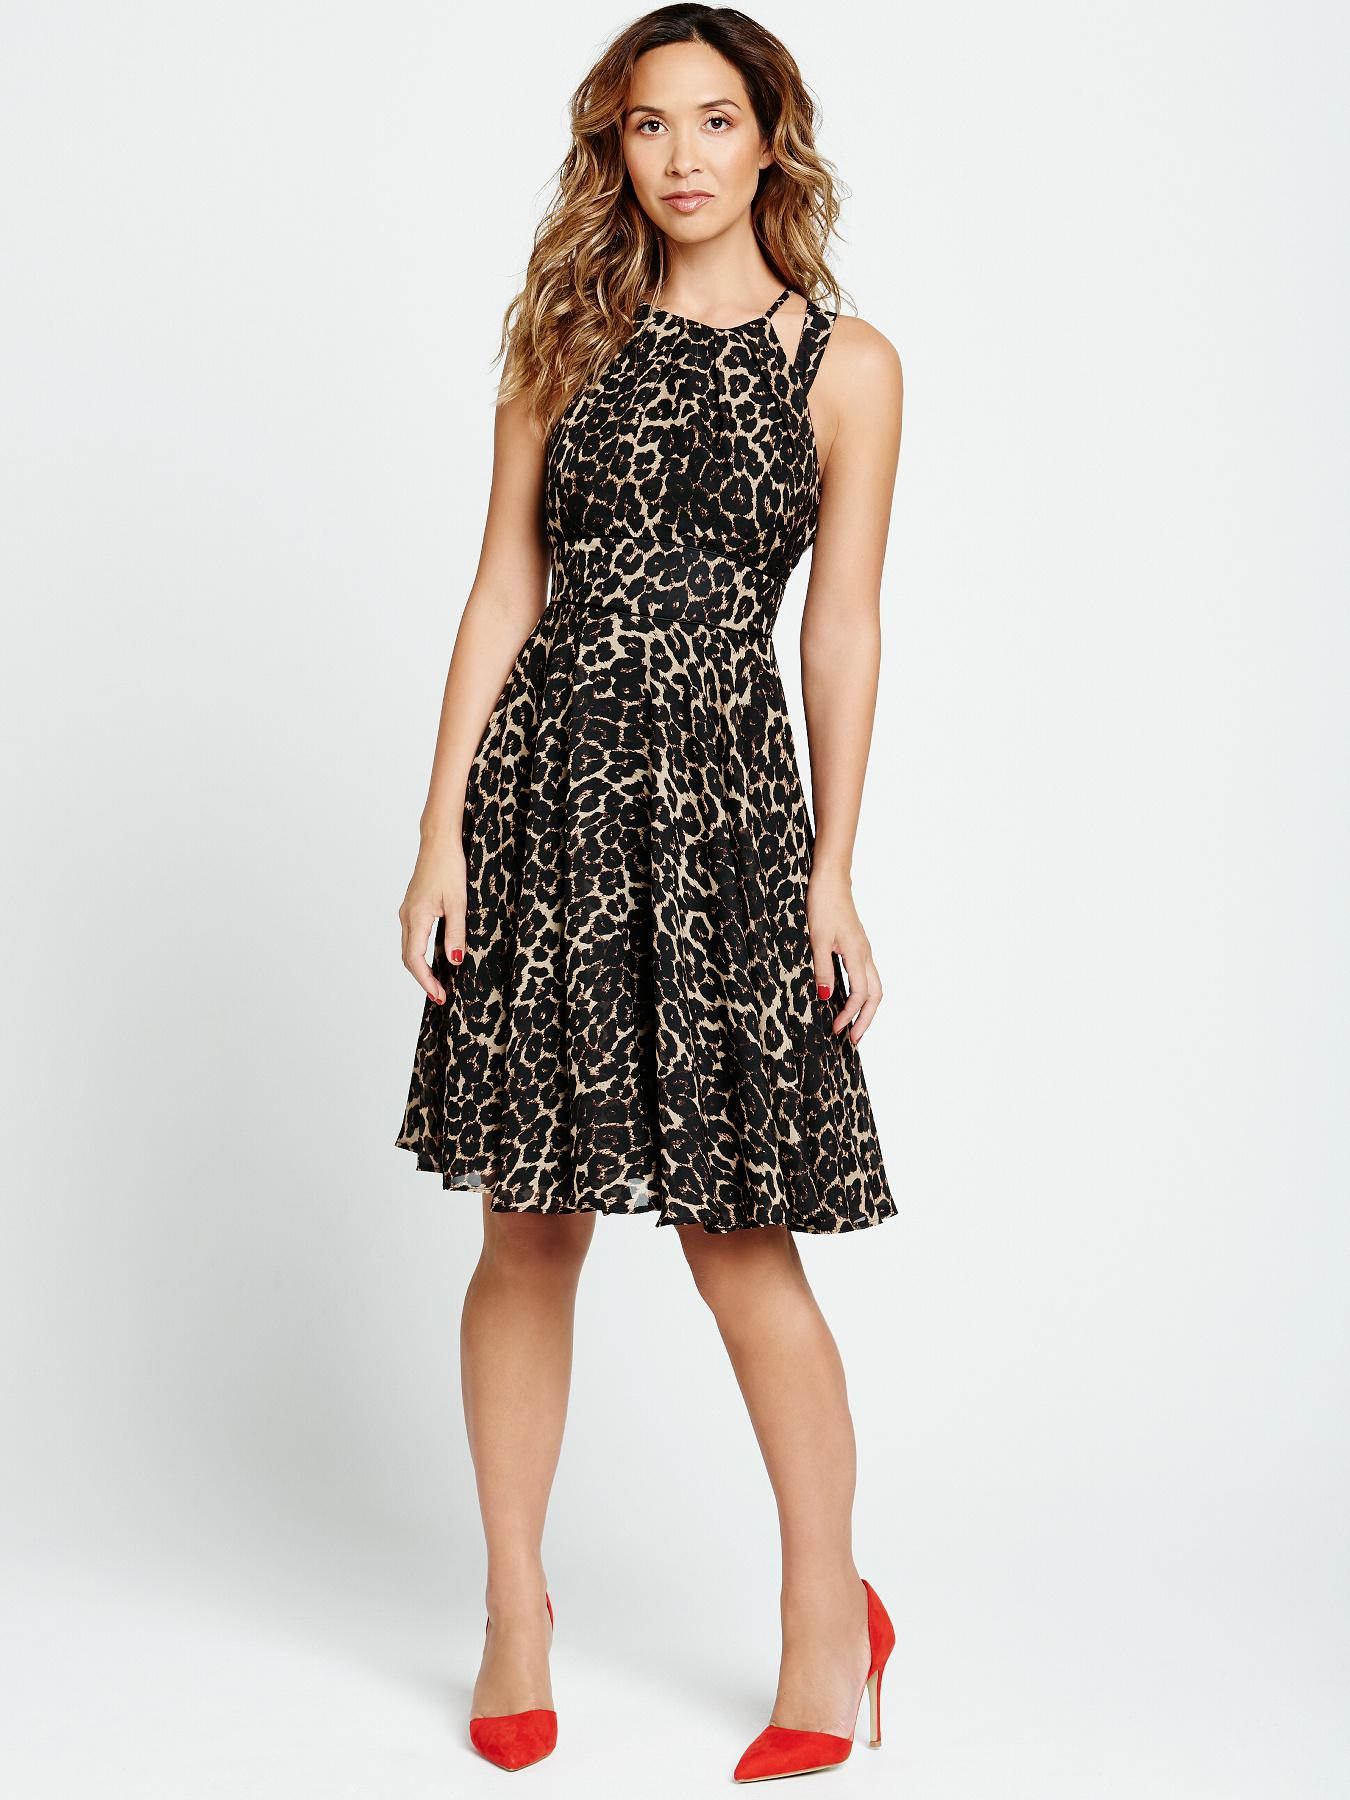 Myleene Klass Cut-Out Shoulder Dress.